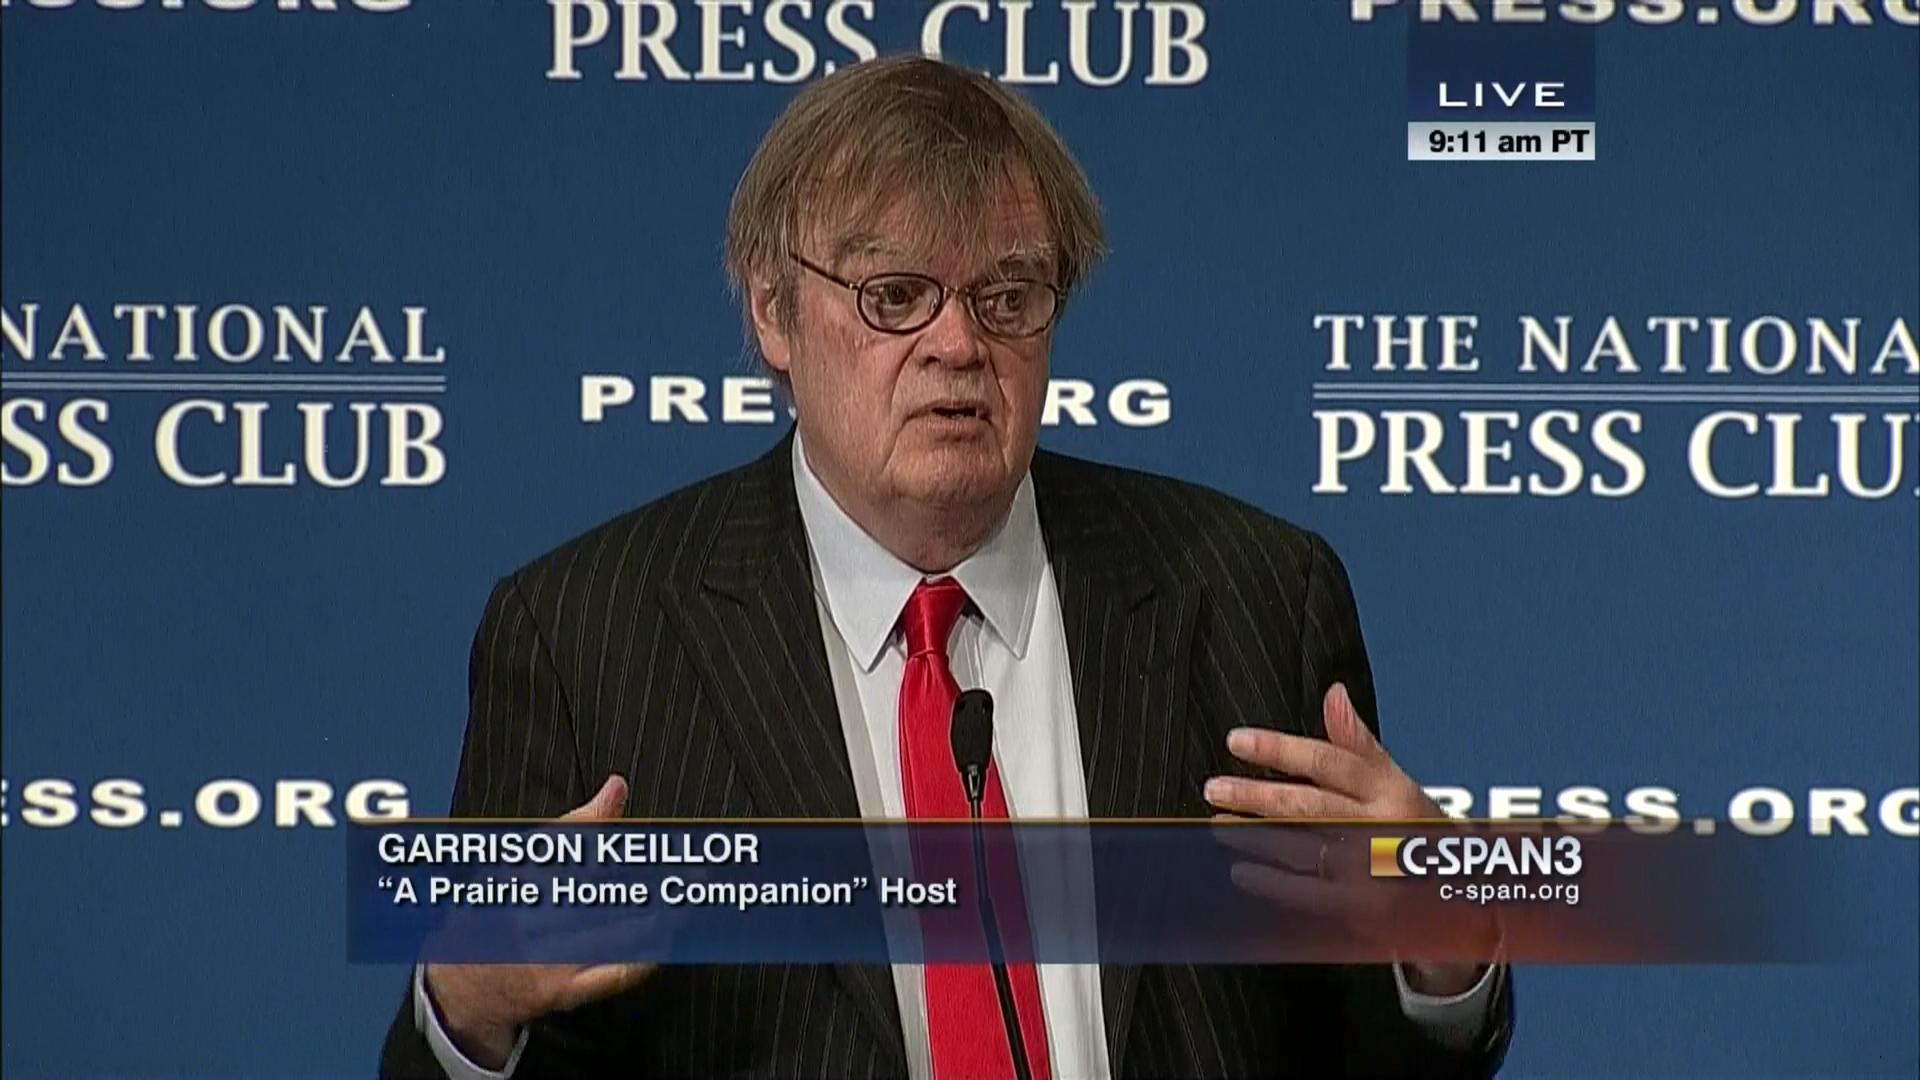 Garrison Keillor At The National Press Club C Span Org